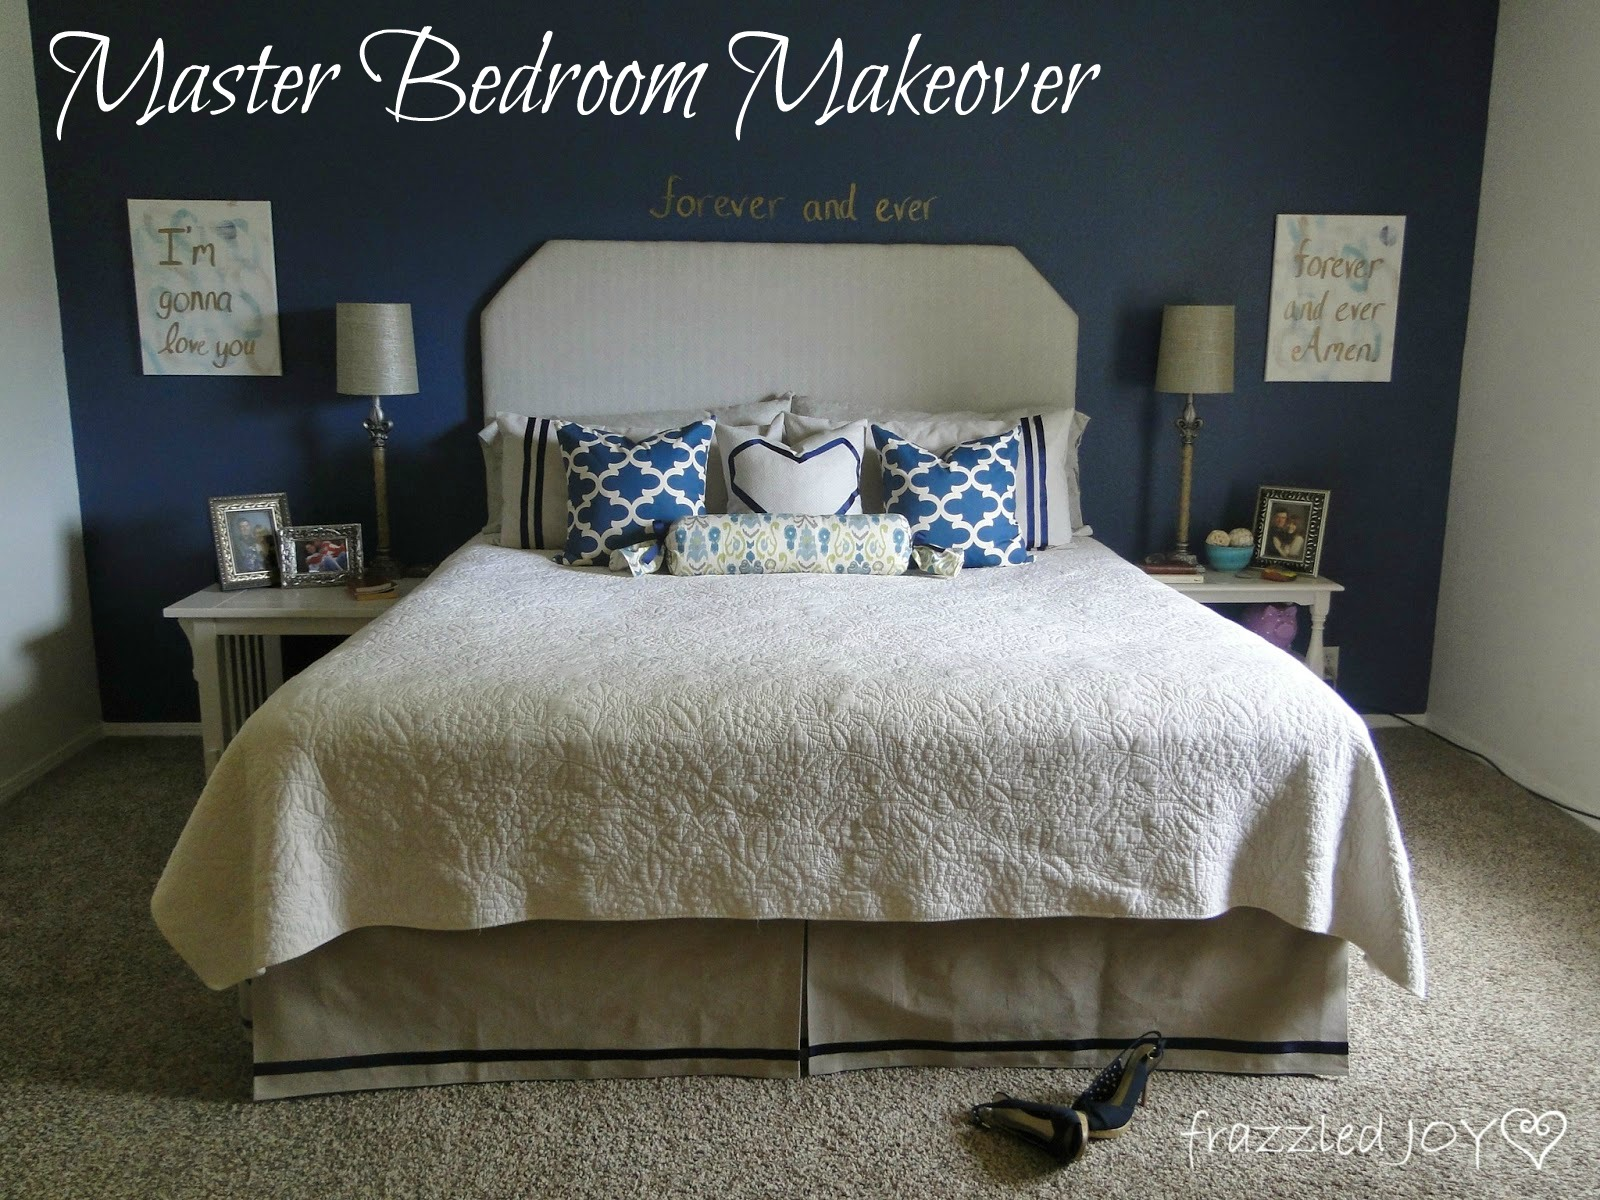 orc-master-bedroom